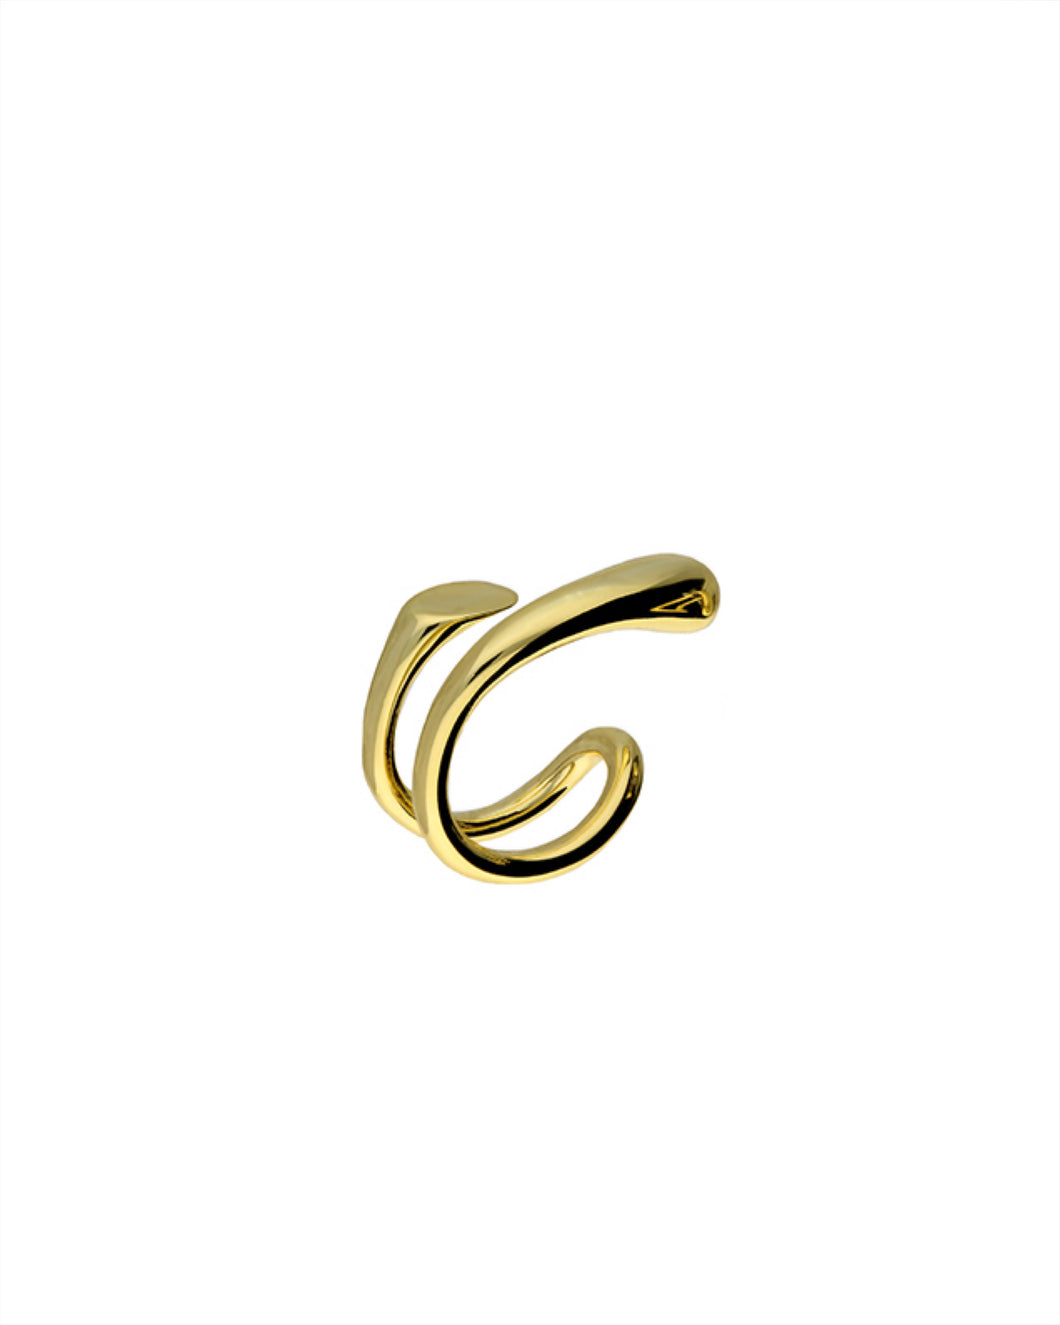 Ear Candy Double Helix Cuff Left - Gold Plated